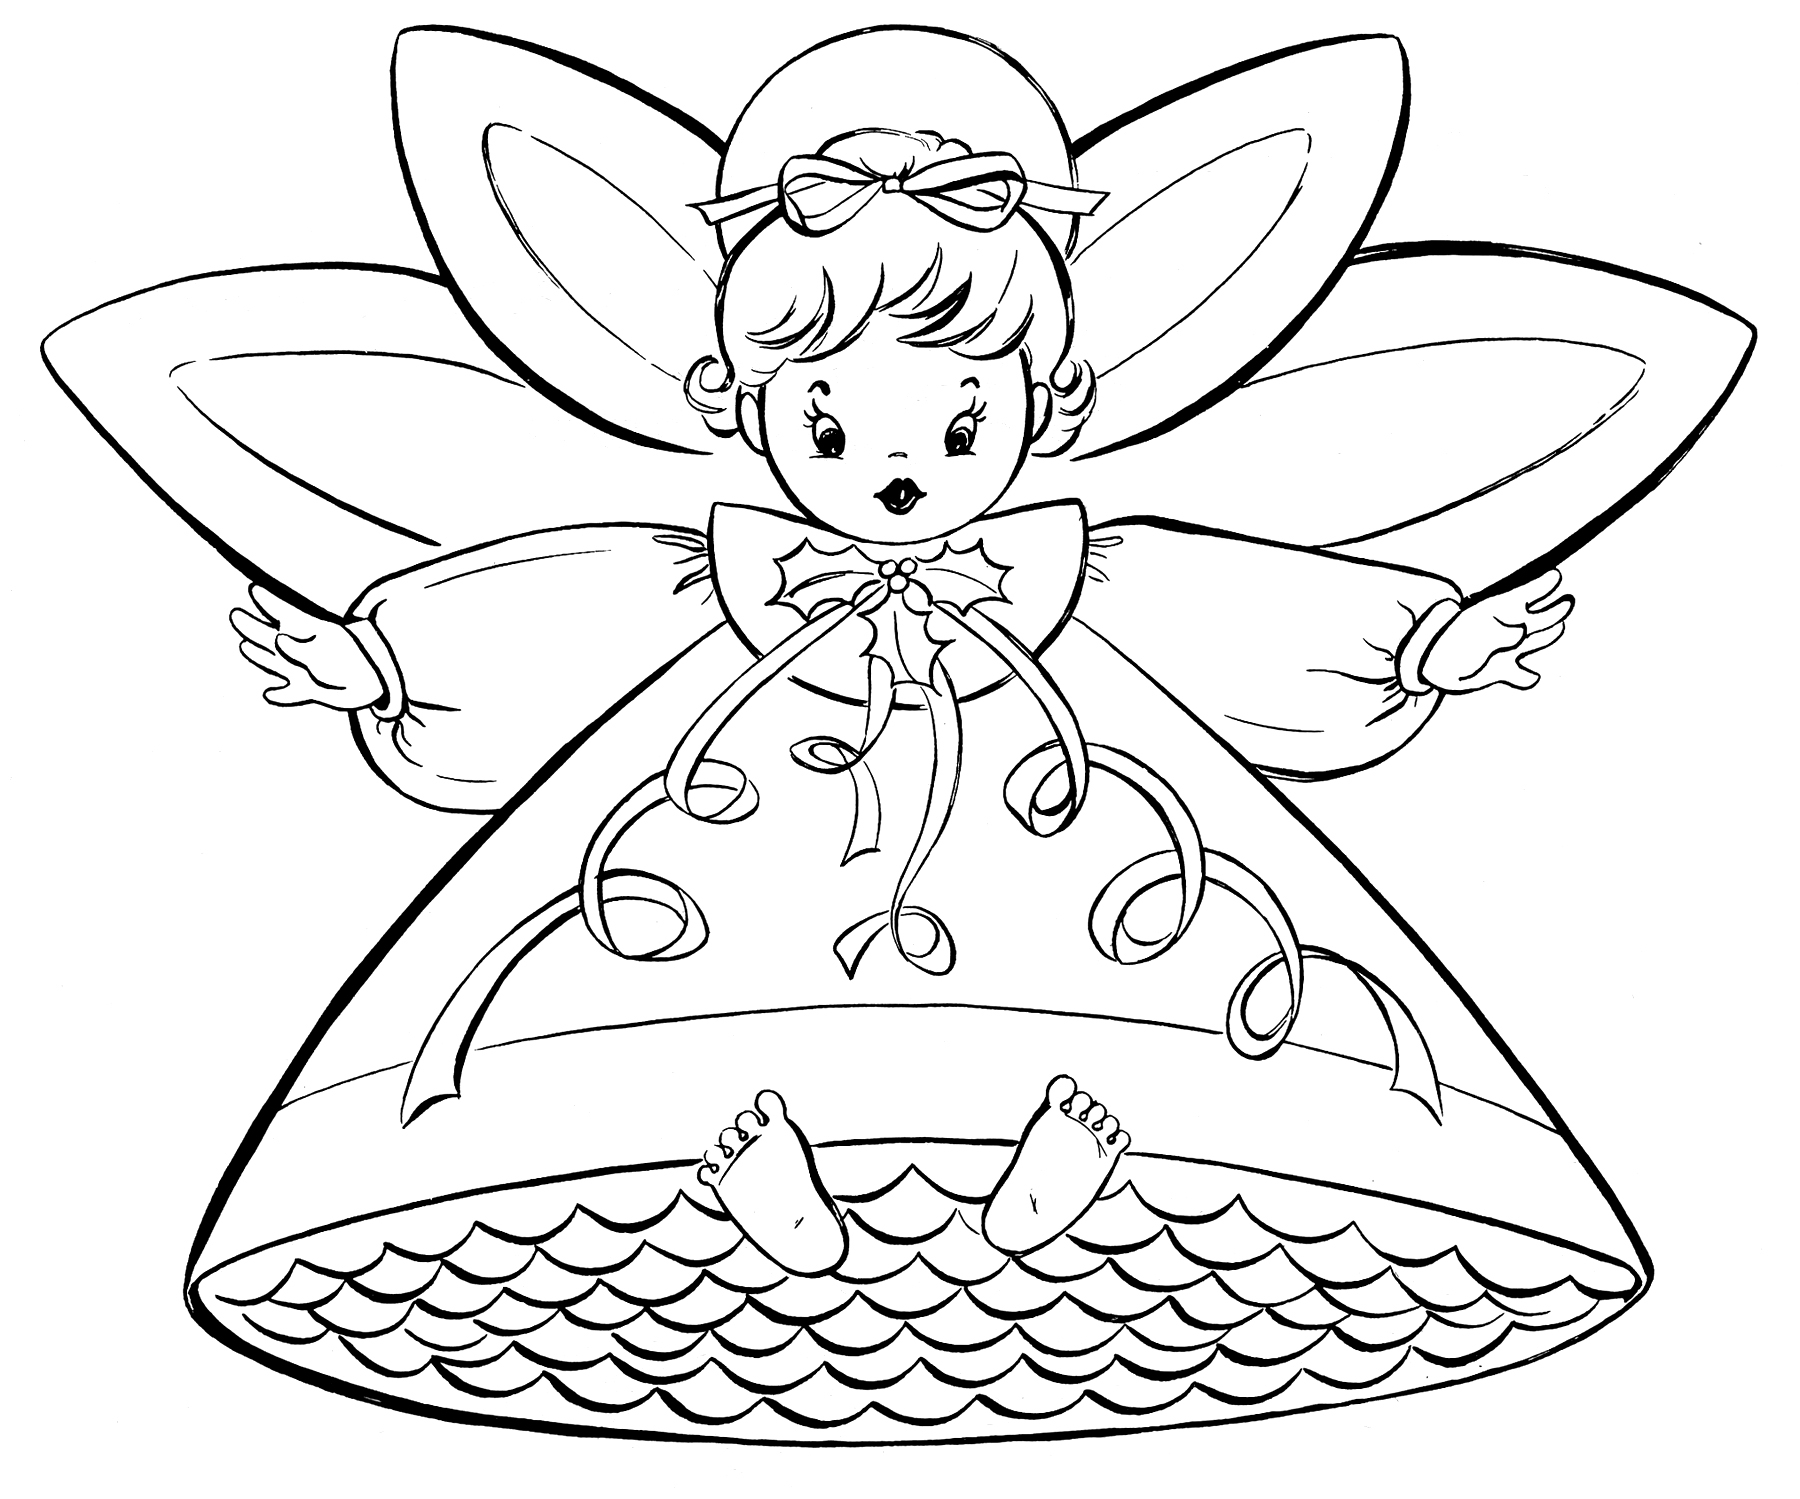 holiday coloring pages free christmas tree coloring pages for childrens printable for free coloring pages holiday free